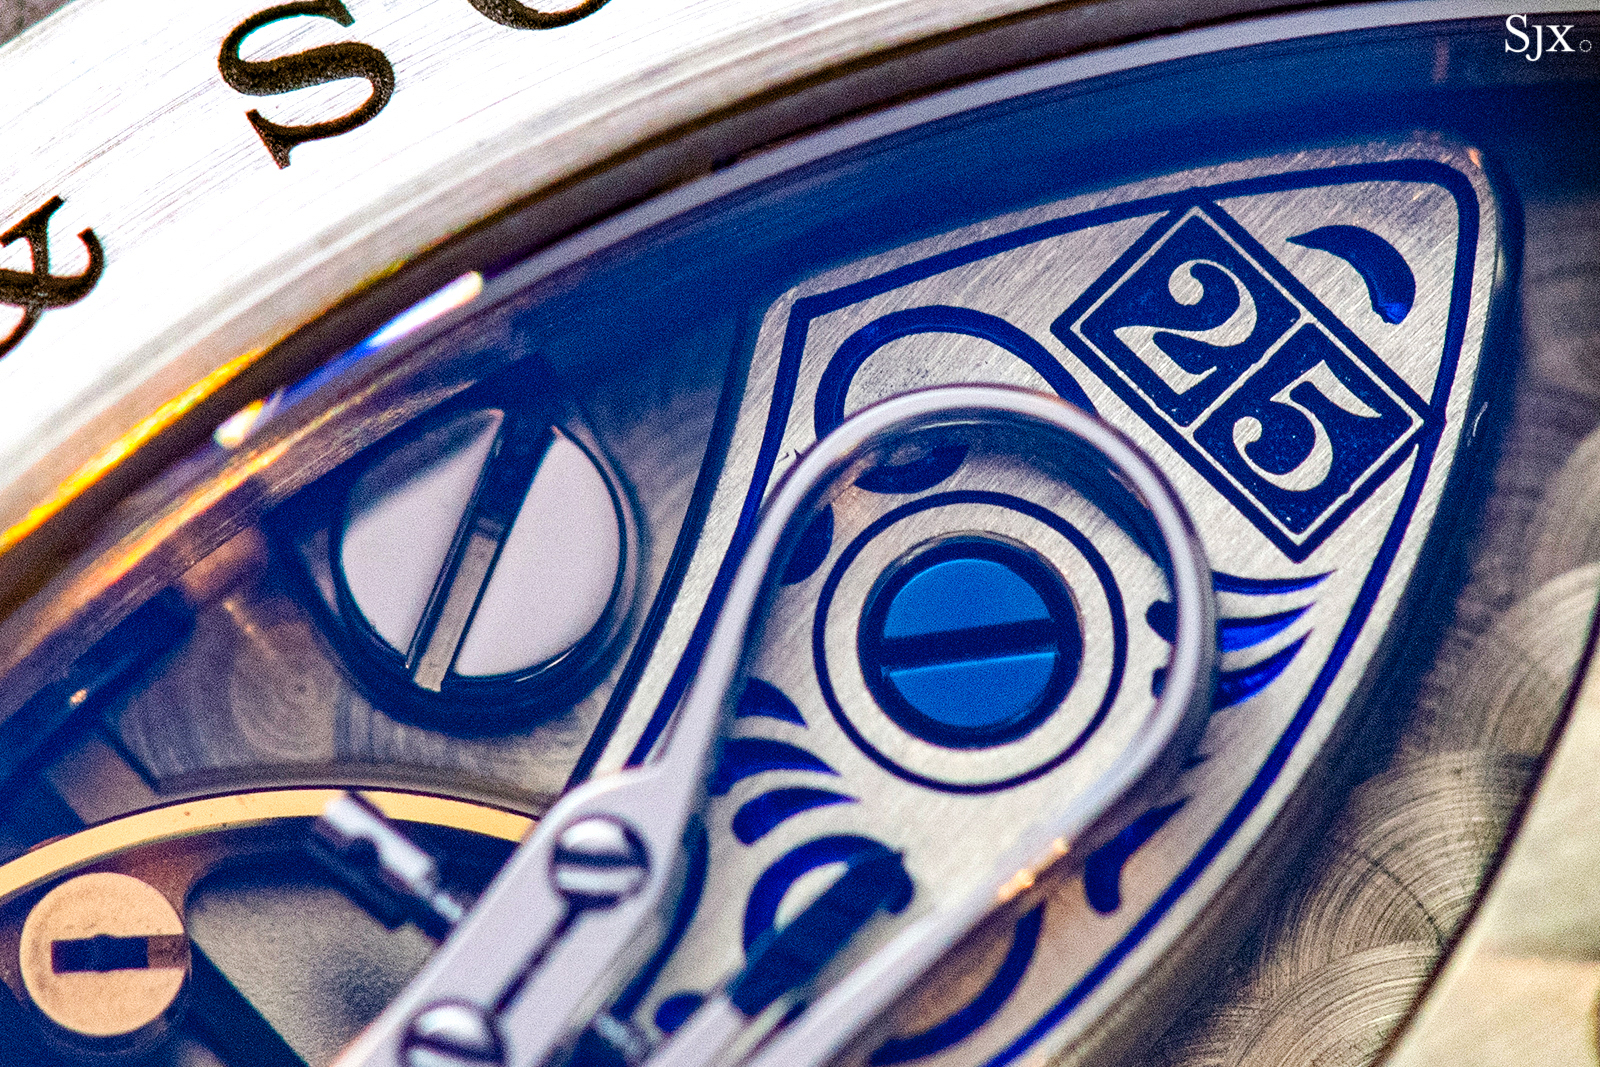 Lange 1 25th Anniversary engraved balance cock close up